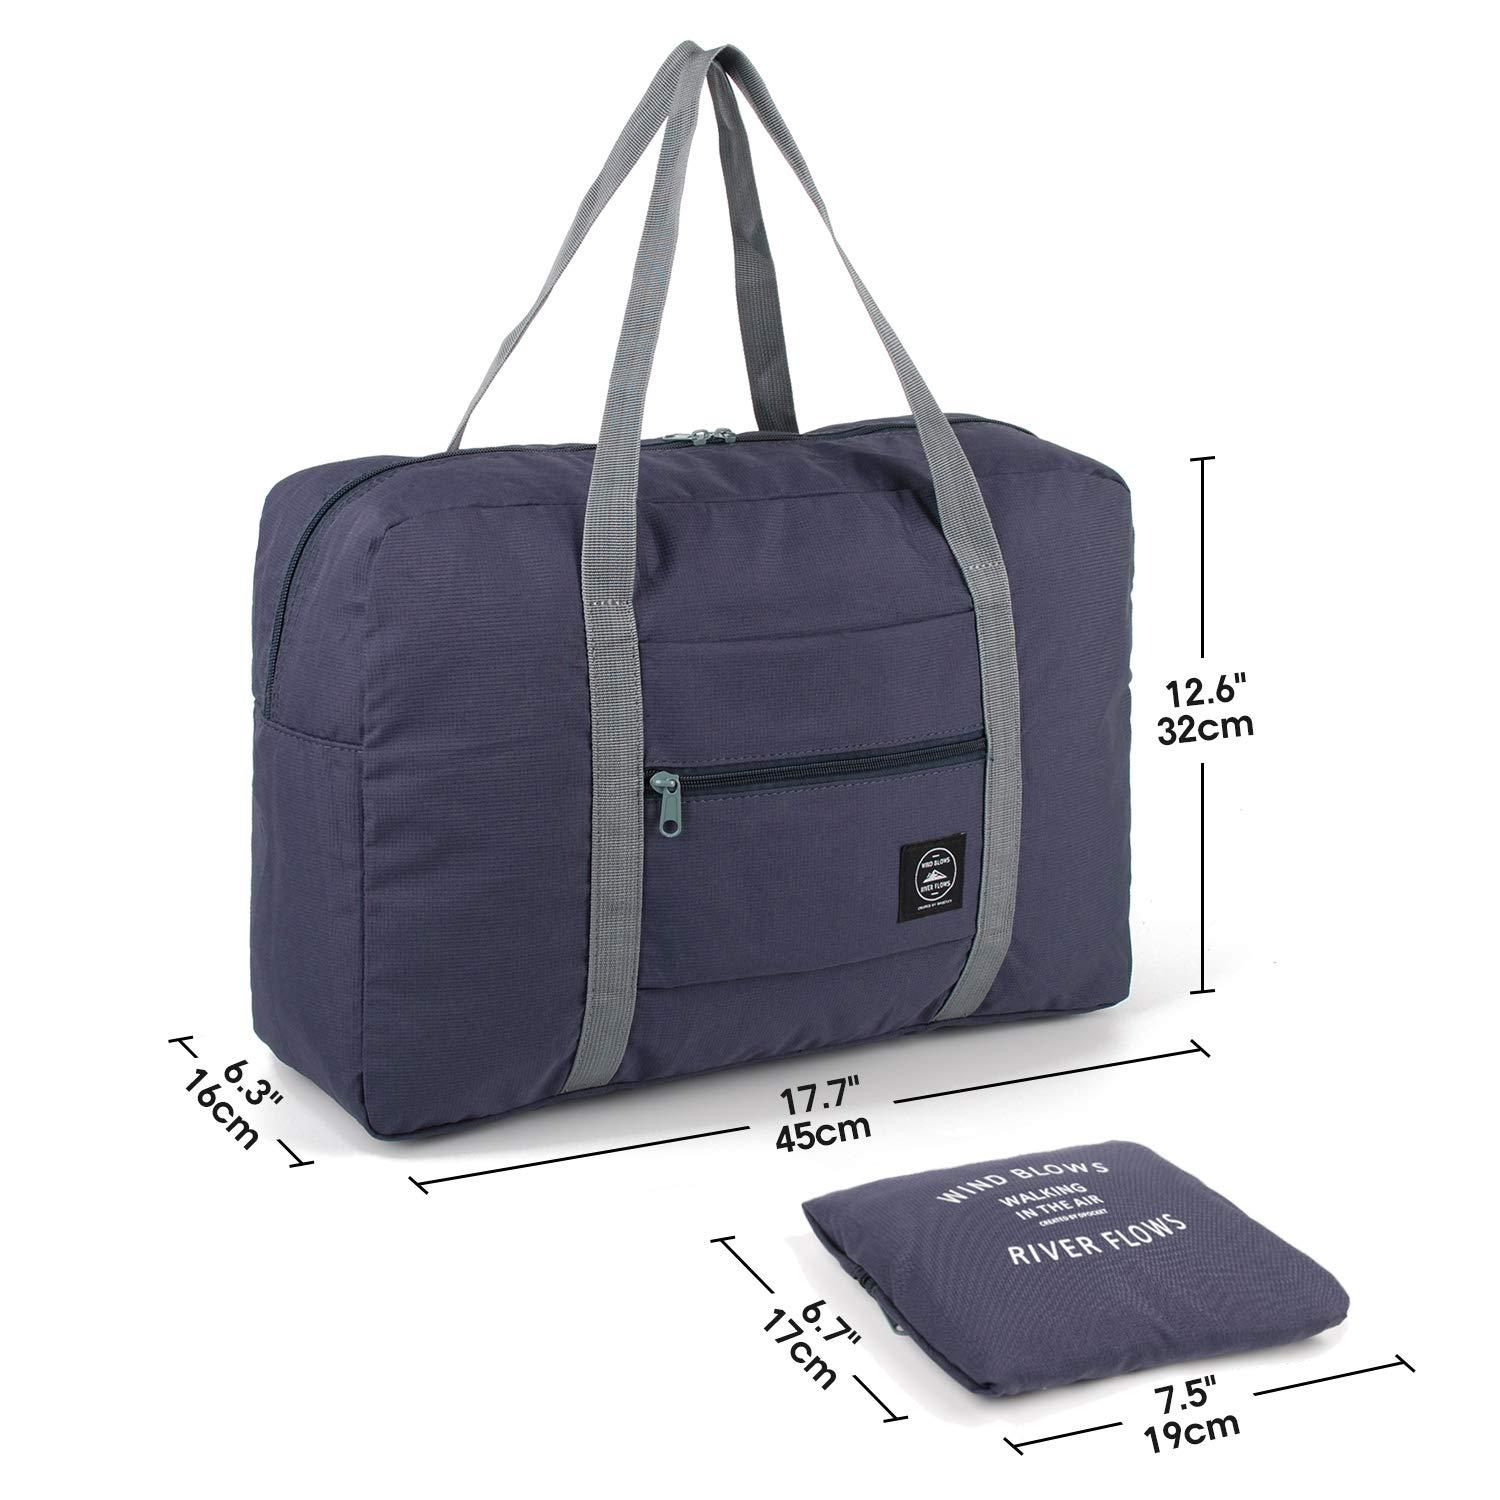 Travel Foldable Duffel Bag - Buy 2 Free Shipping!!